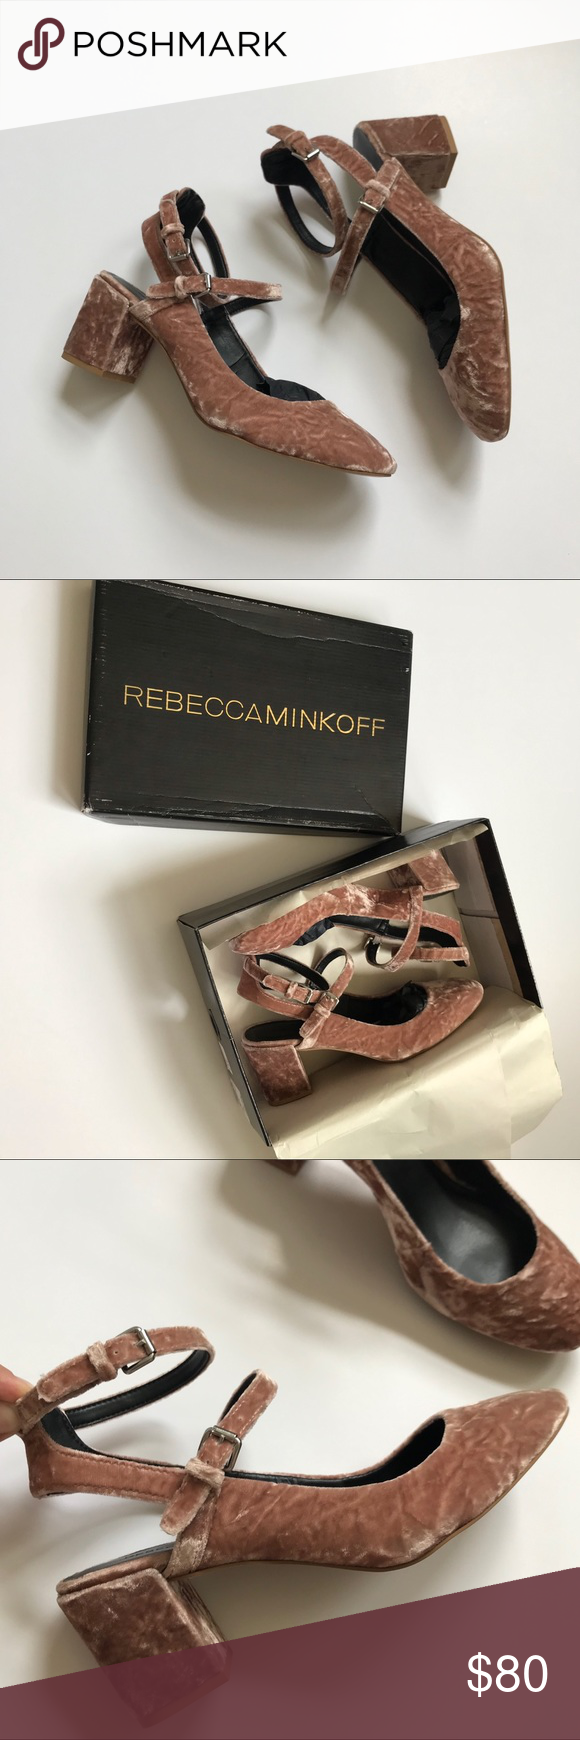 Rebecca Minkoff Brooke Crushed Velvet Block Heel 8 New in Box Rebecca Minkoff ...